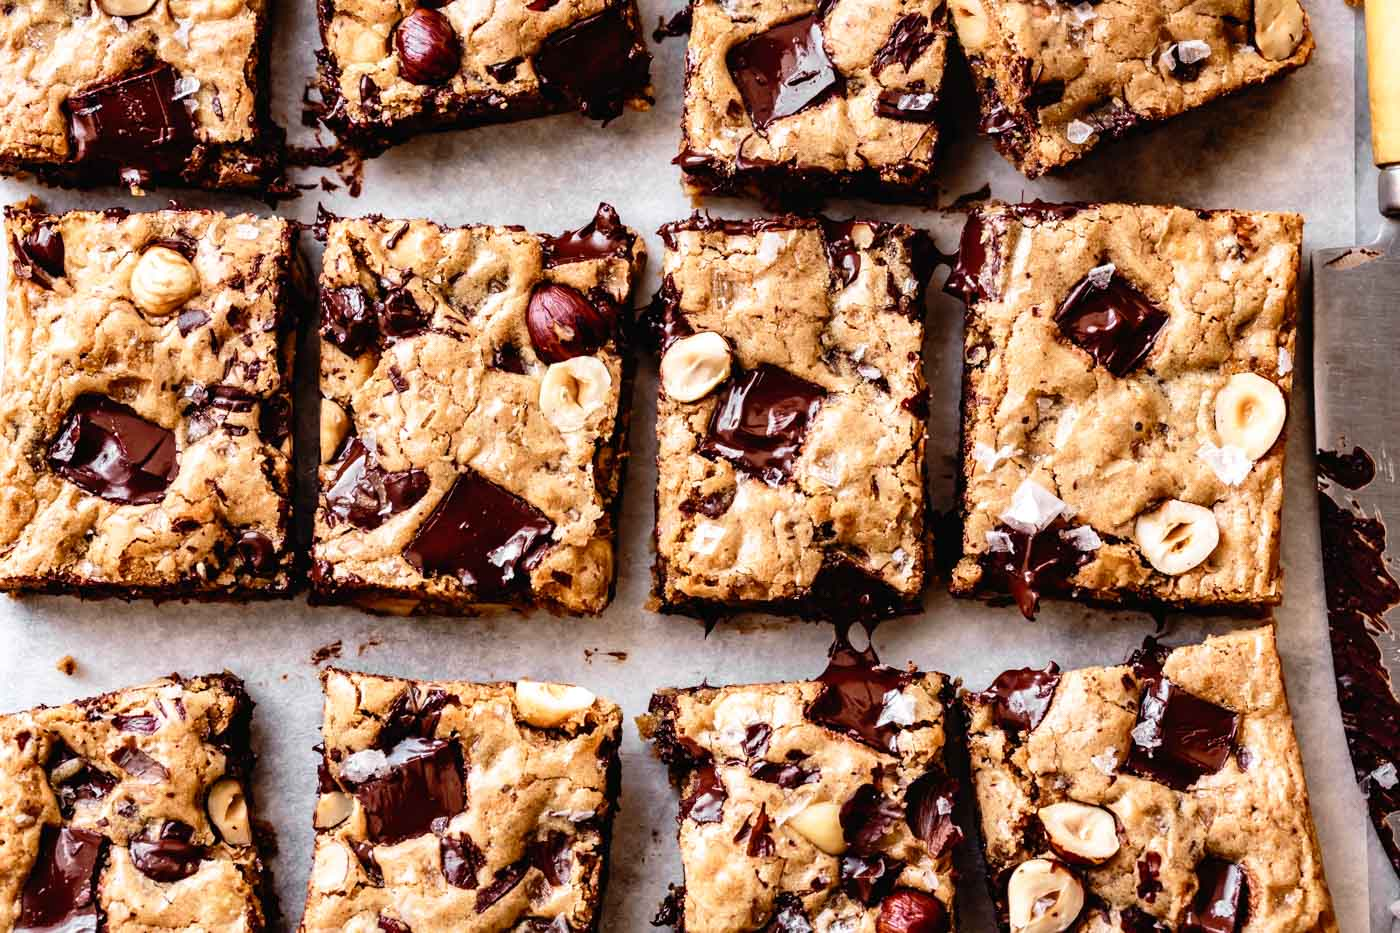 gluten-free blondie bars, just-baked and cut